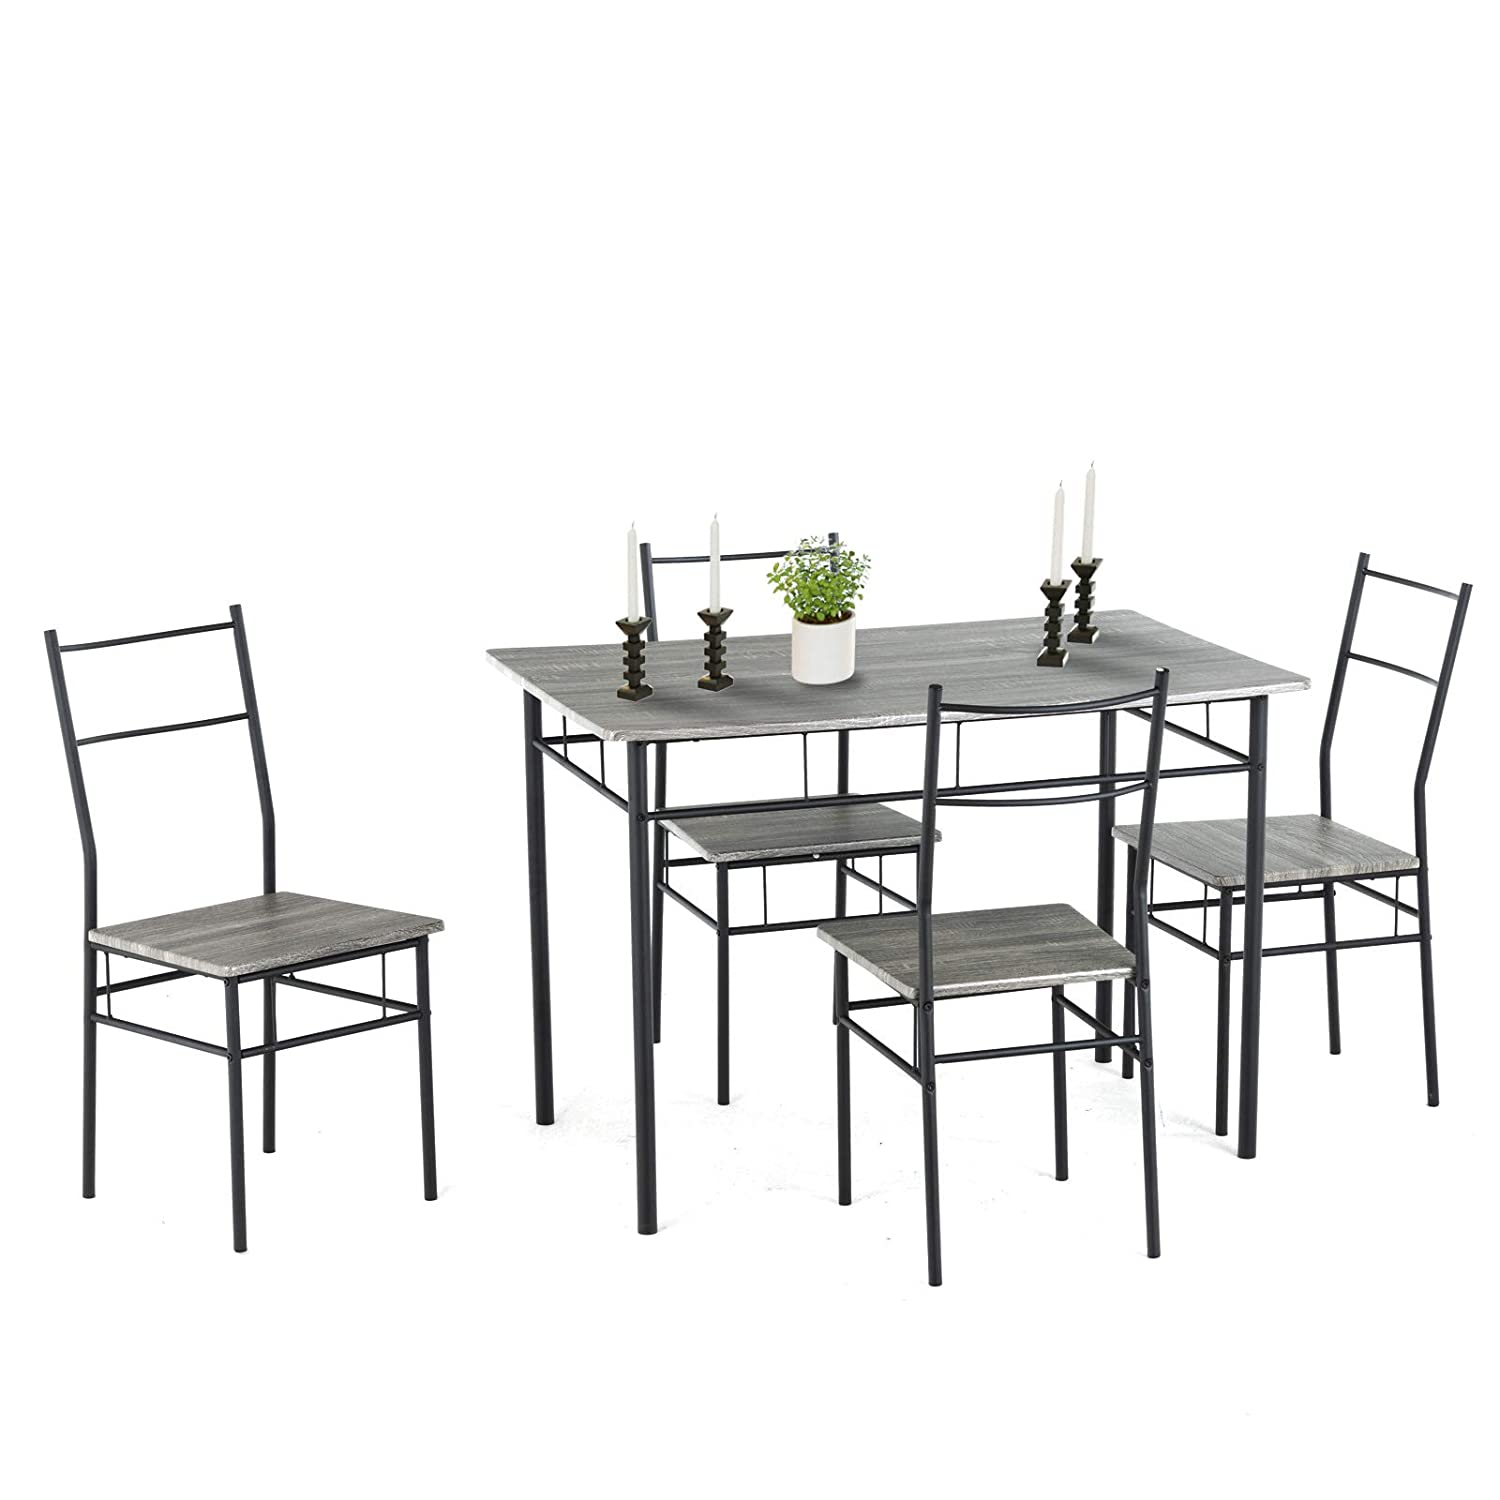 mecor 5 Piece Dining Table Set, Vintage Wood Tabletop Kitchen Table w/ 4 Chairs with Metal Frame (Grey)